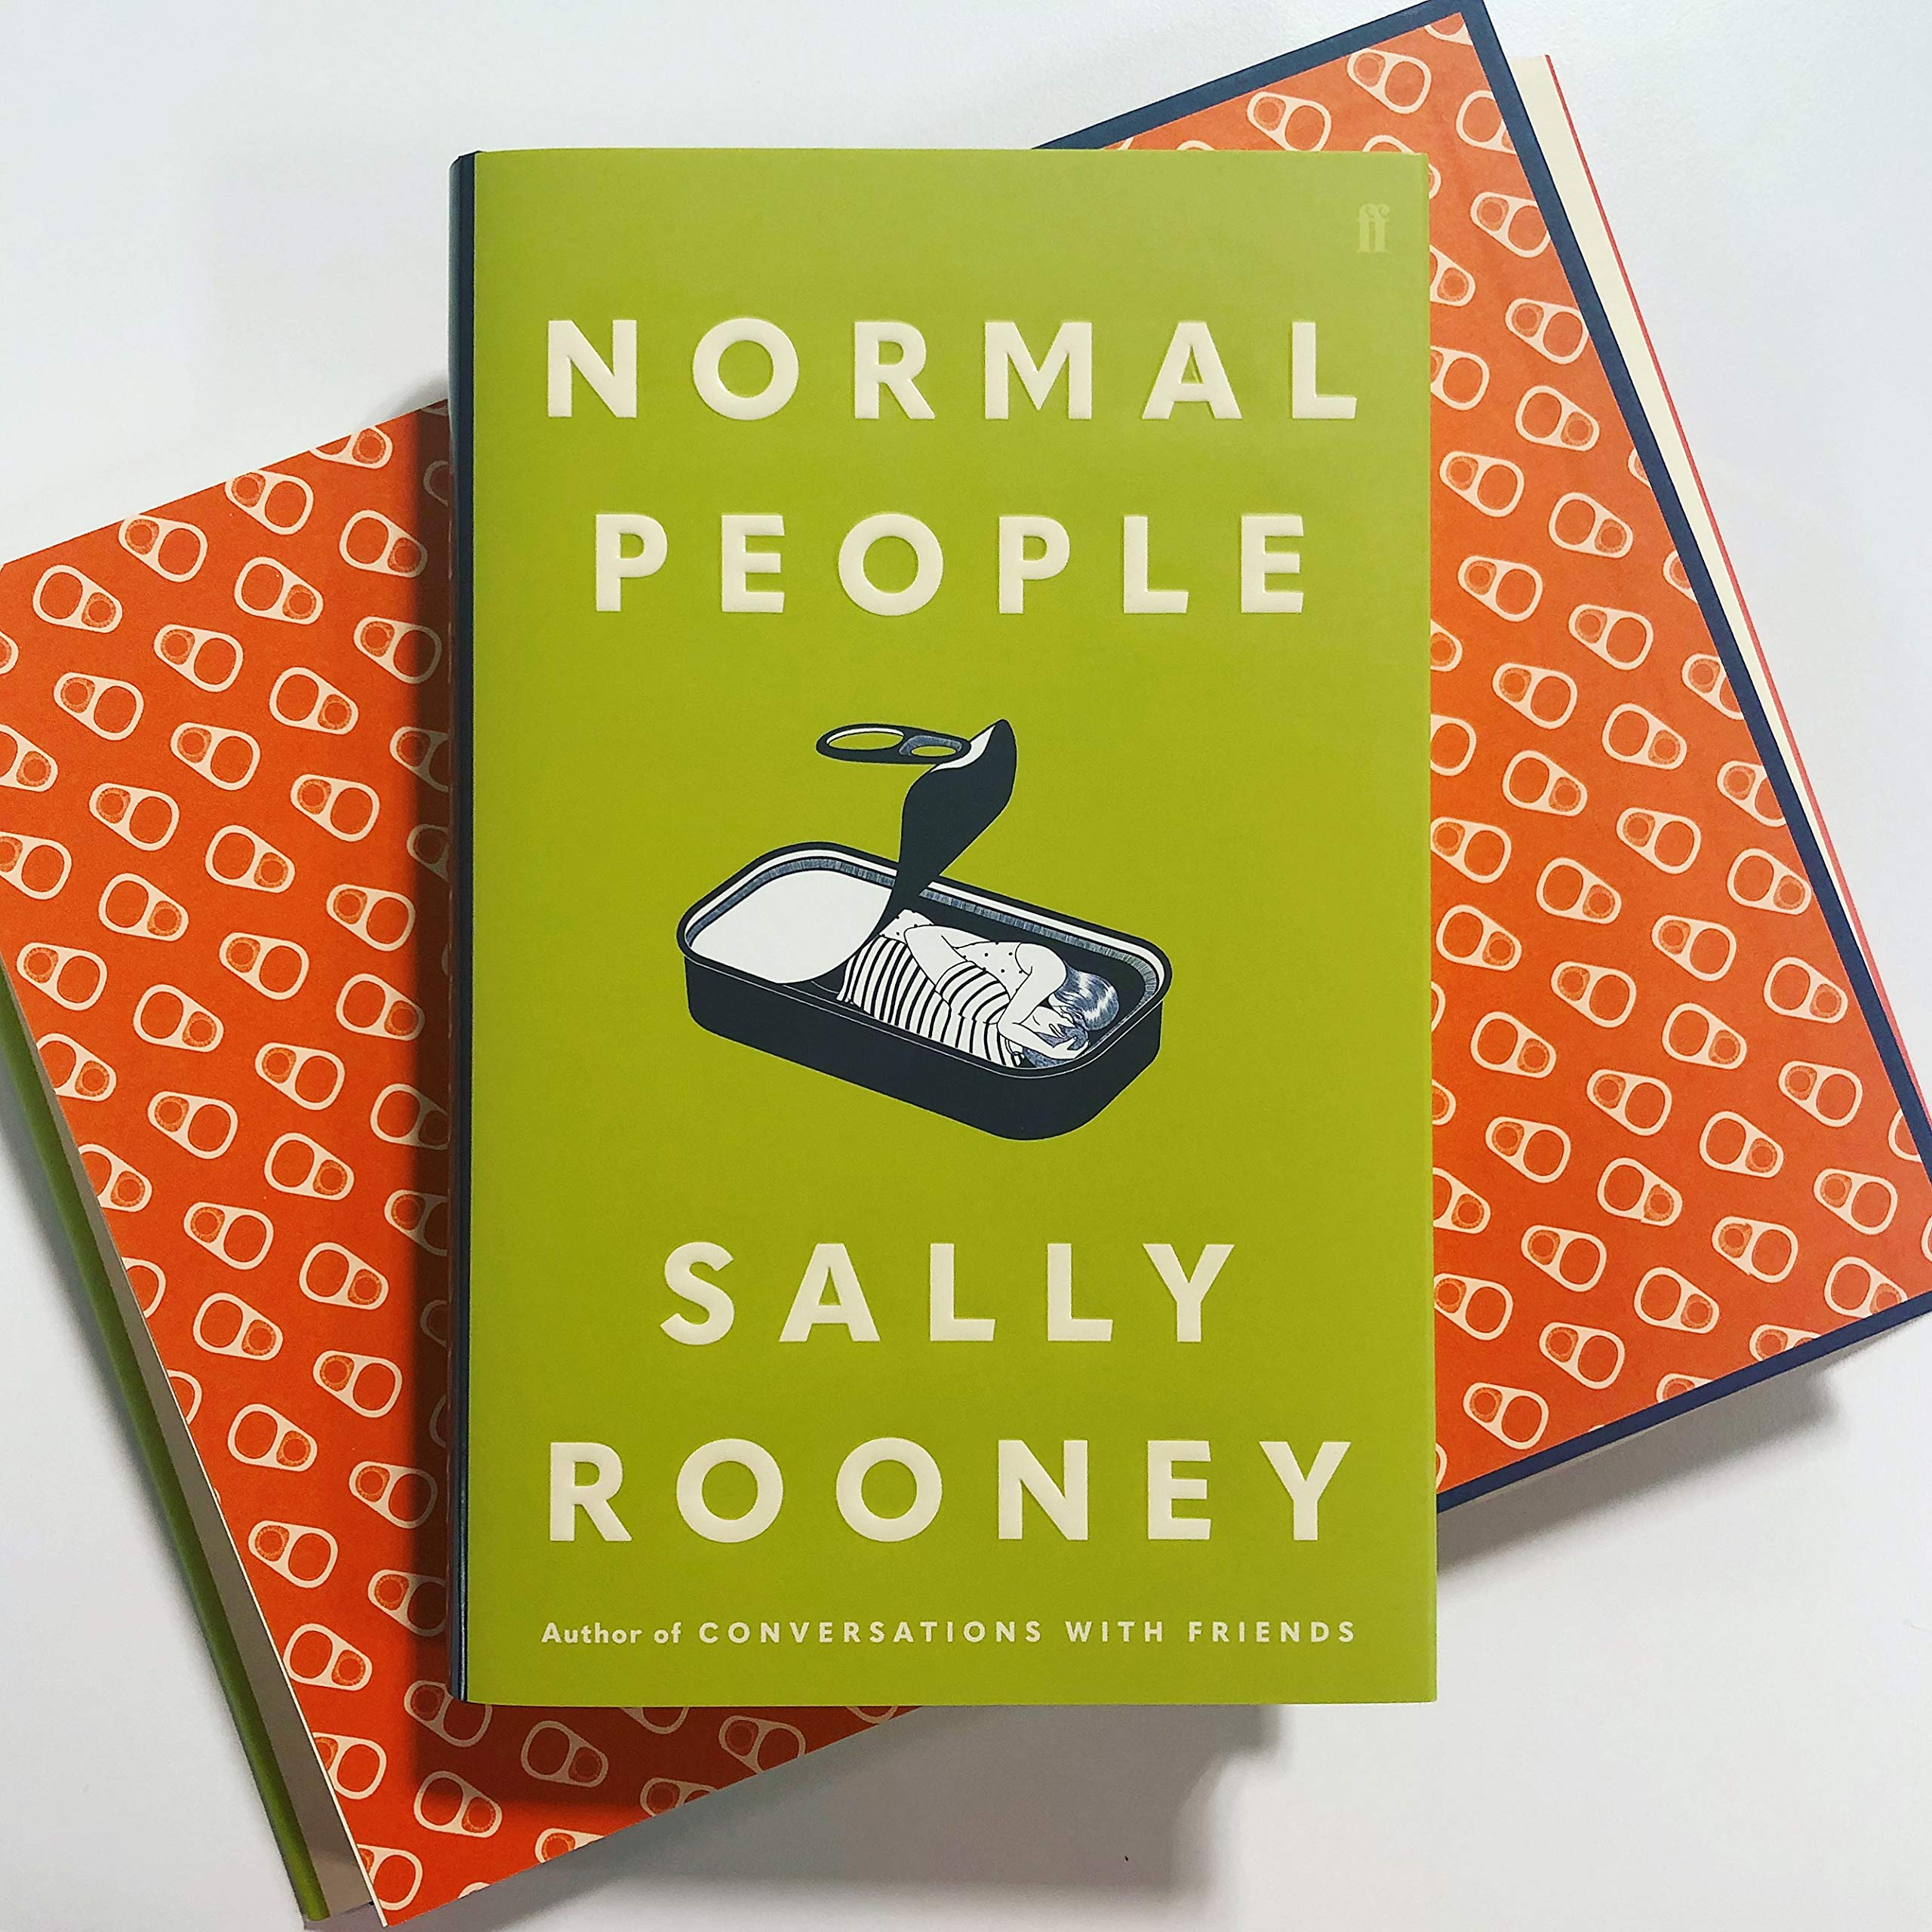 Image result for Normal People by Sally Rooney